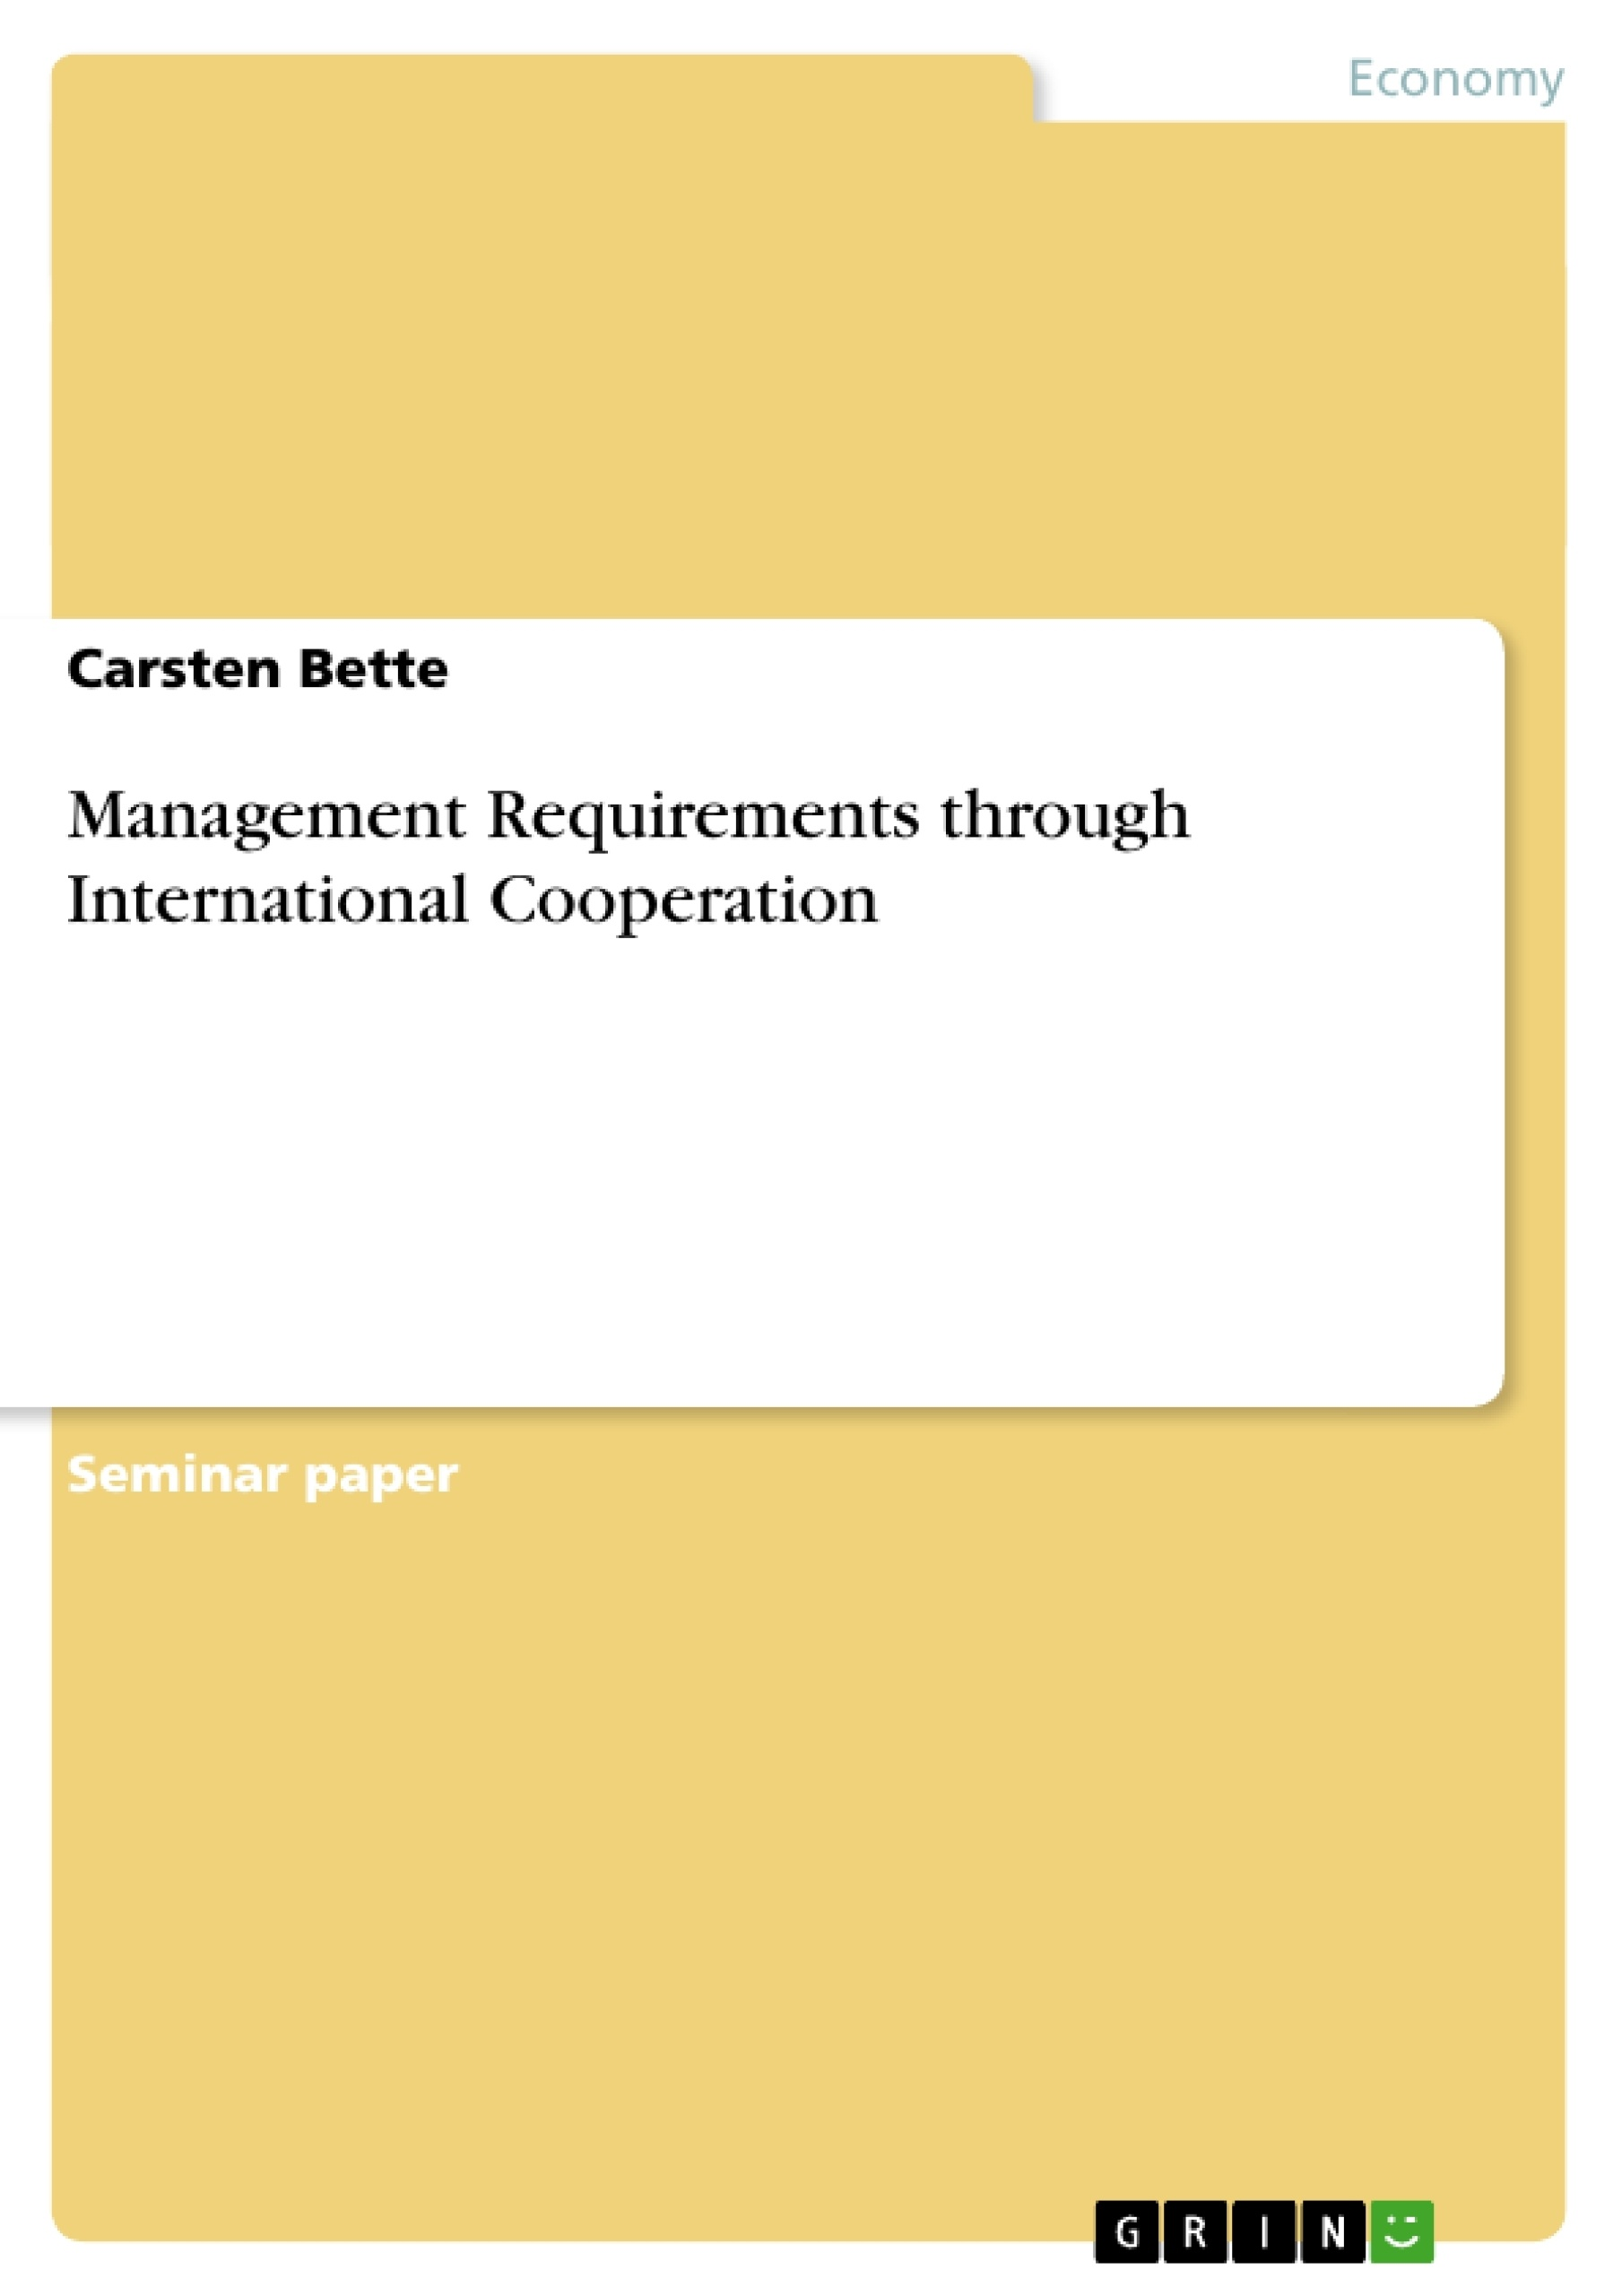 Title: Management Requirements through International Cooperation